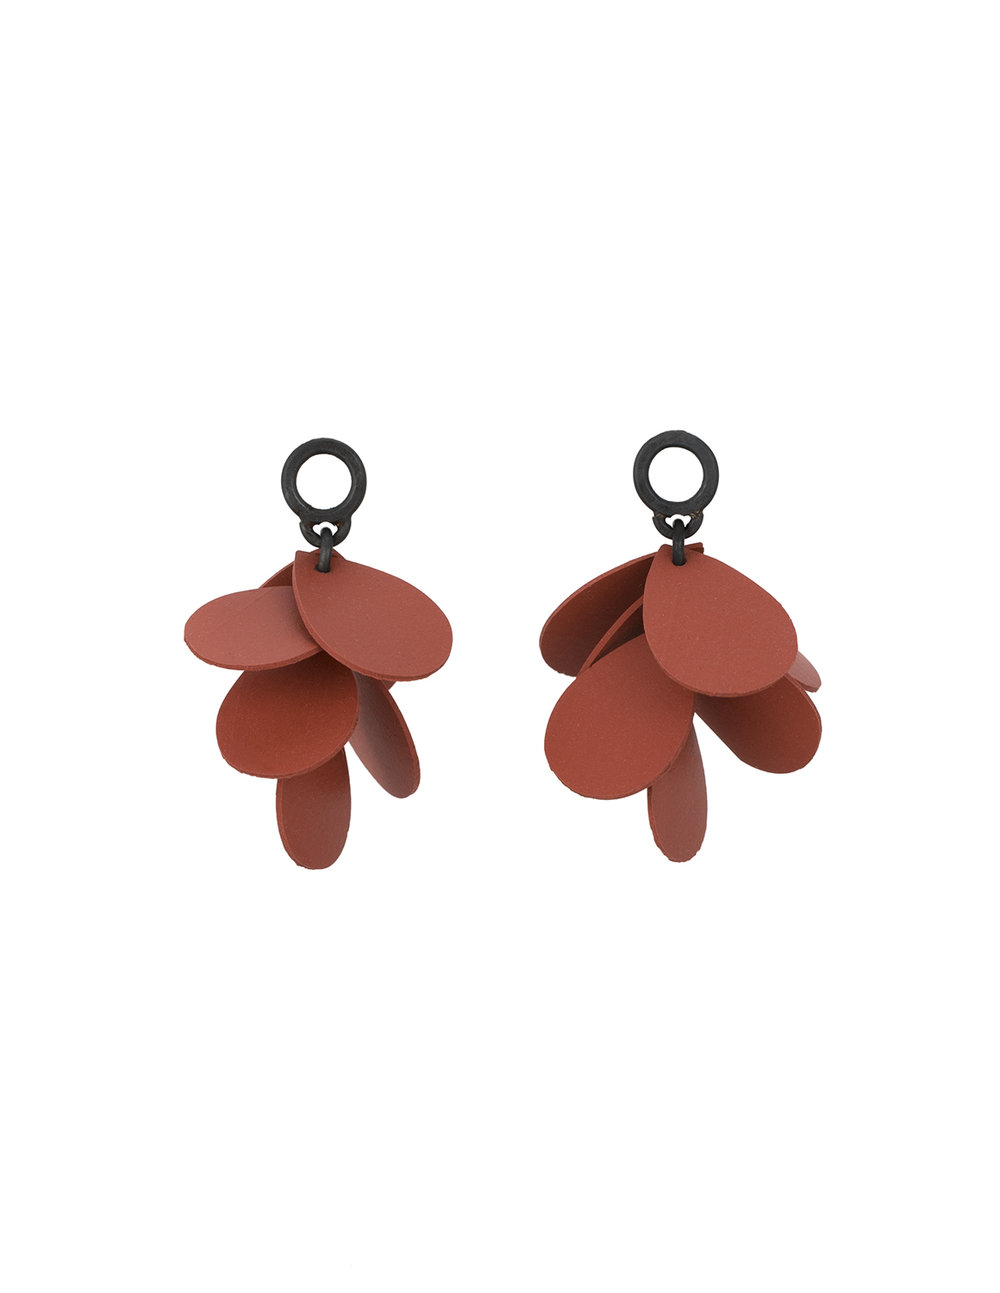 17_maia_leppo_rhododendrun_petal_earrings.jpg